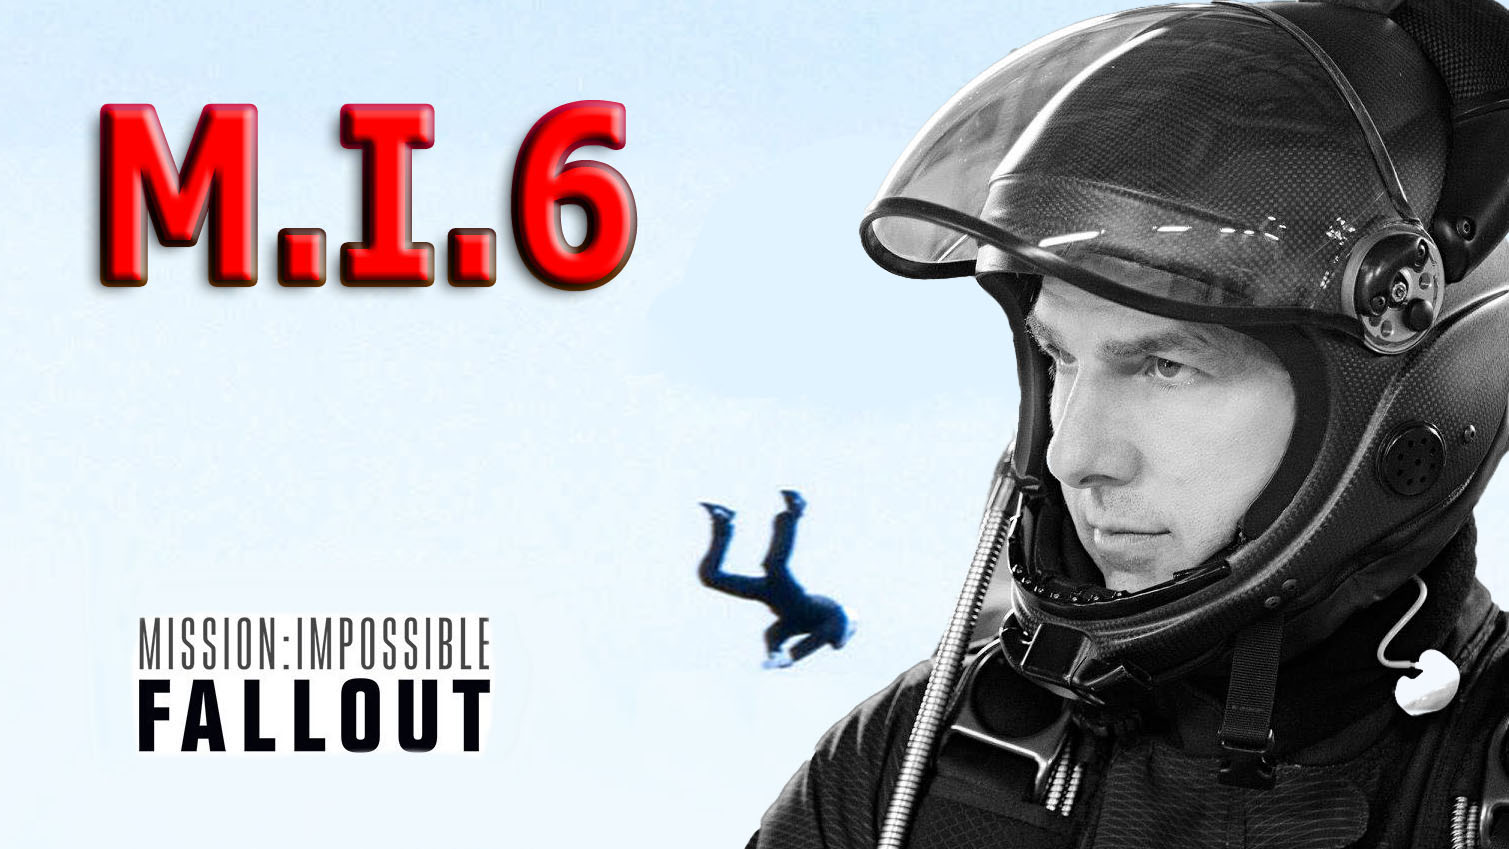 Mission Impossible 6 Fallout Tom Cruise Skydiving Stunts At Film Studio